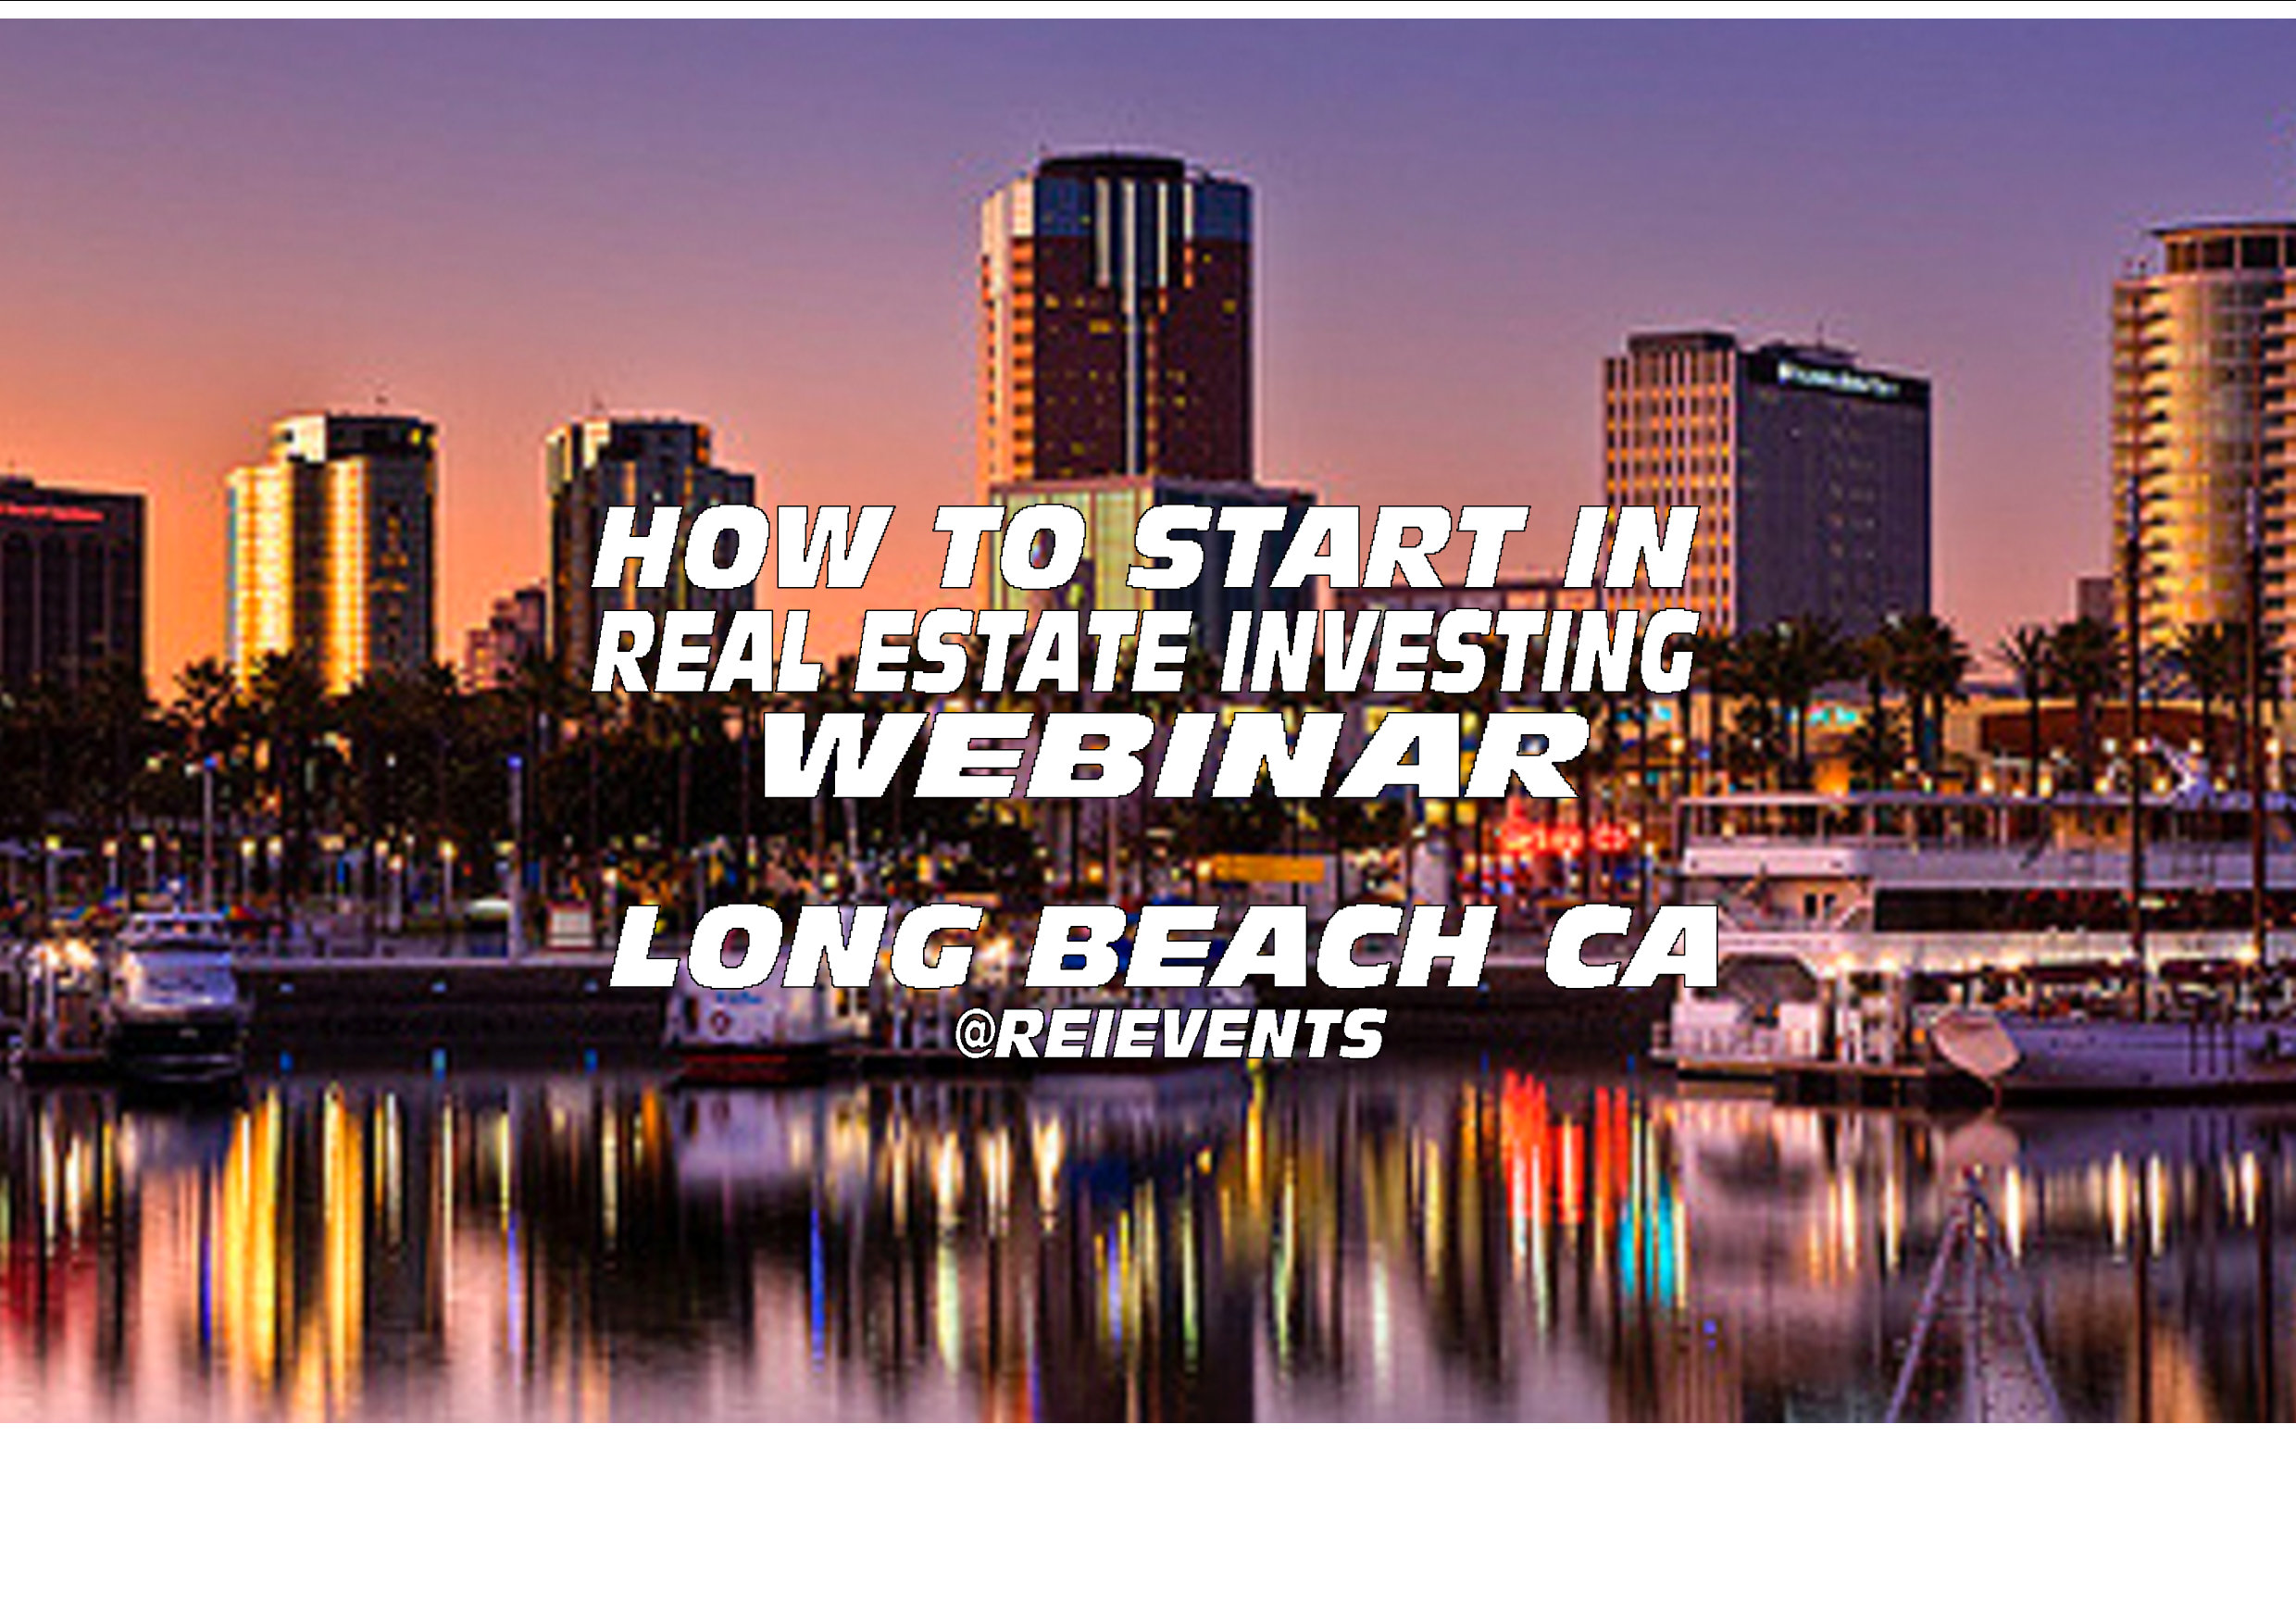 HOW TO START IN REAL ESTATE INVESTING - WEBINAR - Long Beach, CA